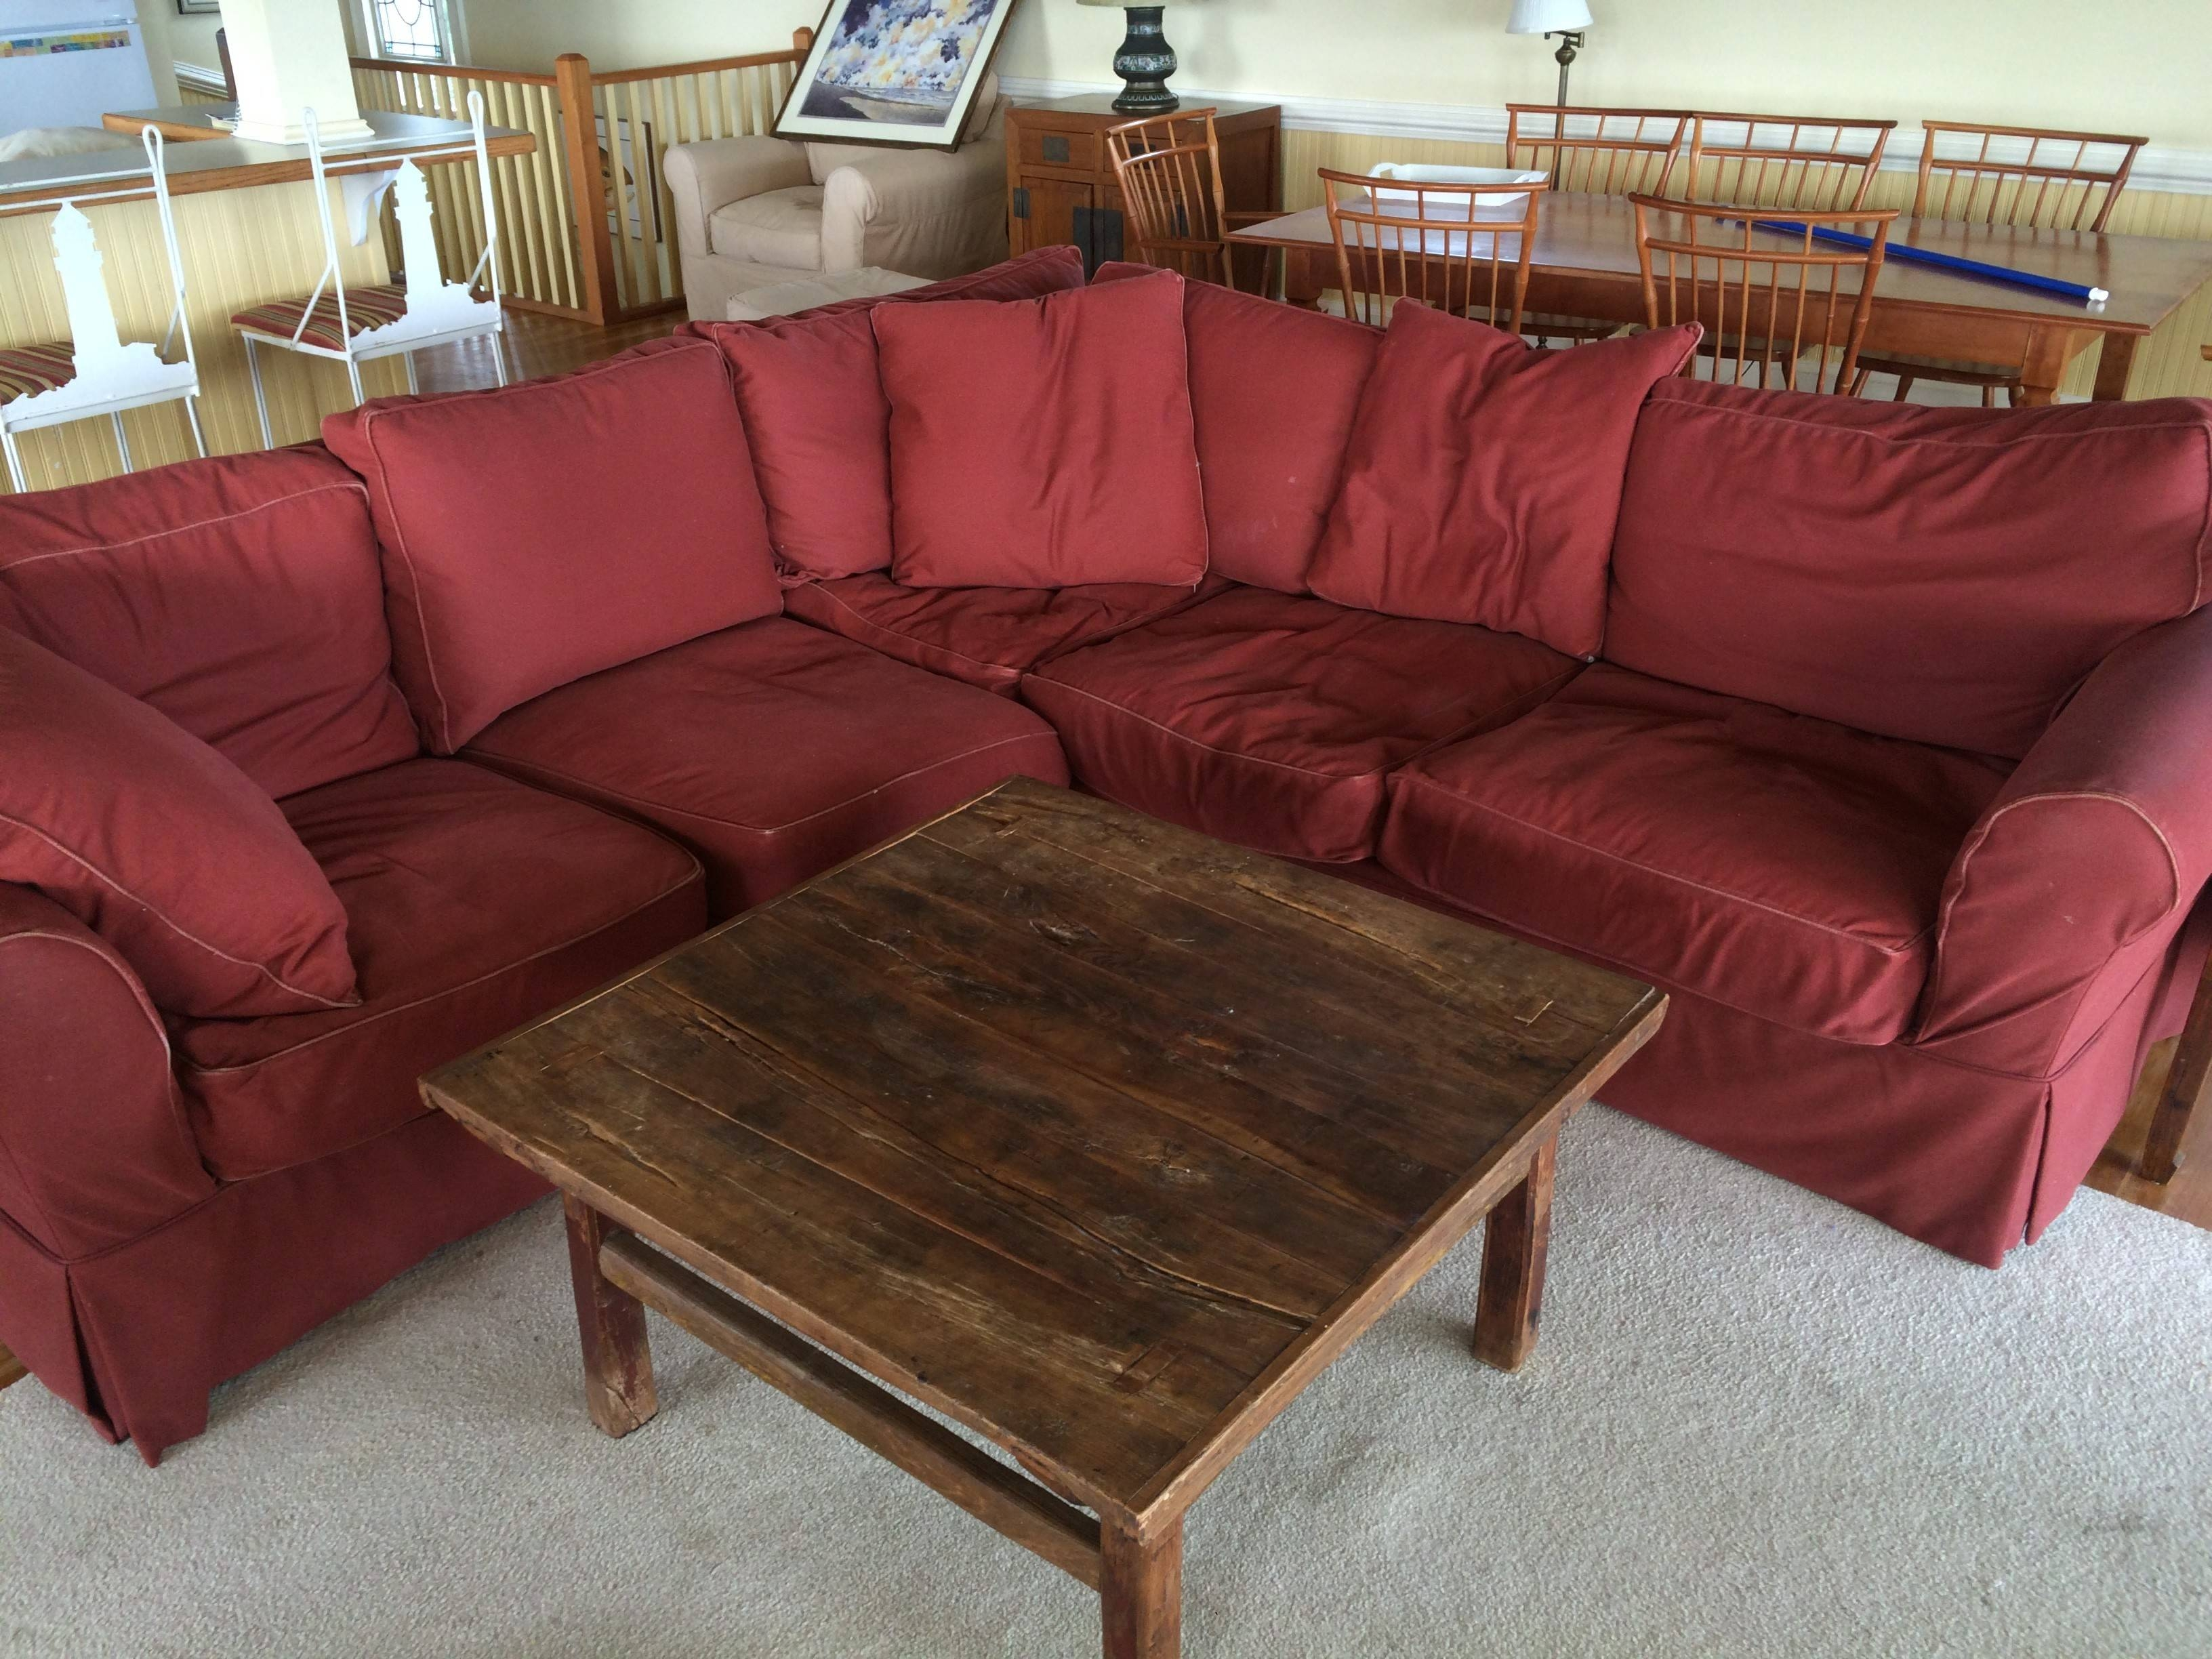 Down Filled Sectional Sofa – Hereo Sofa pertaining to Down Filled Sectional Sofas (Image 5 of 30)